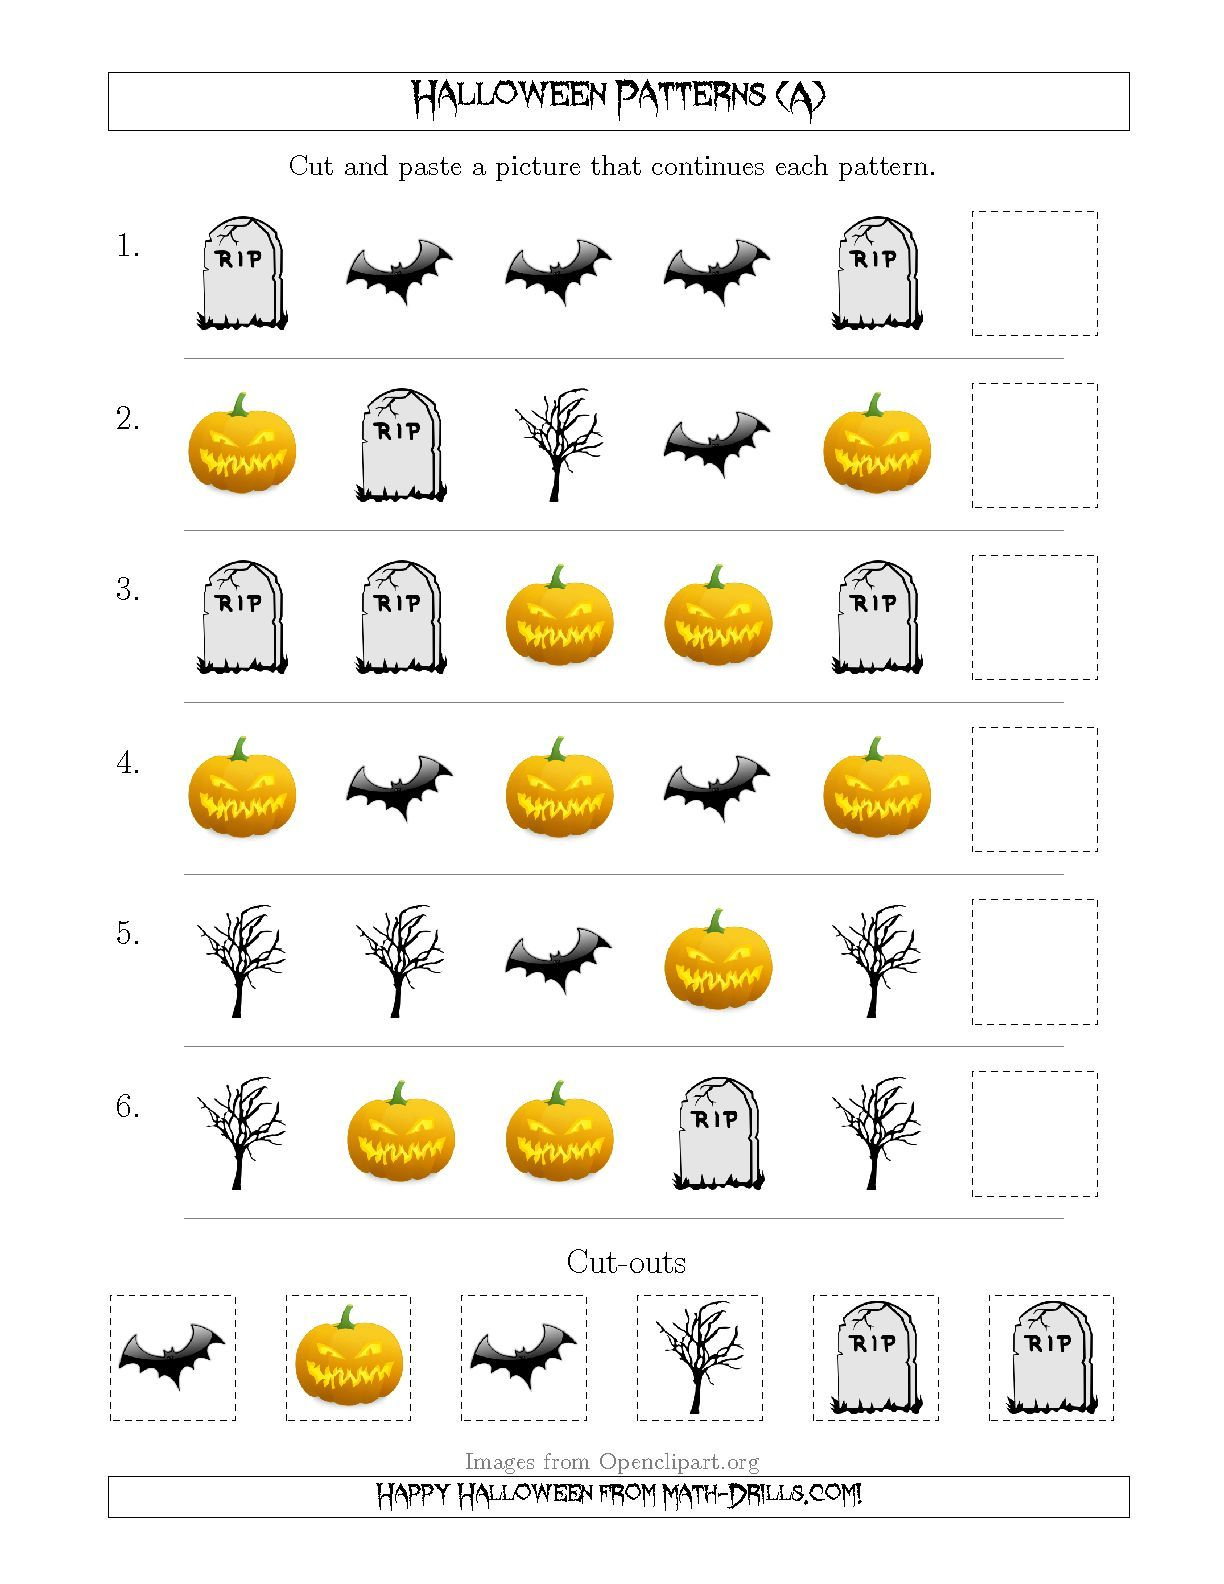 Updated 09 06 Scary Halloween Picture Patterns With